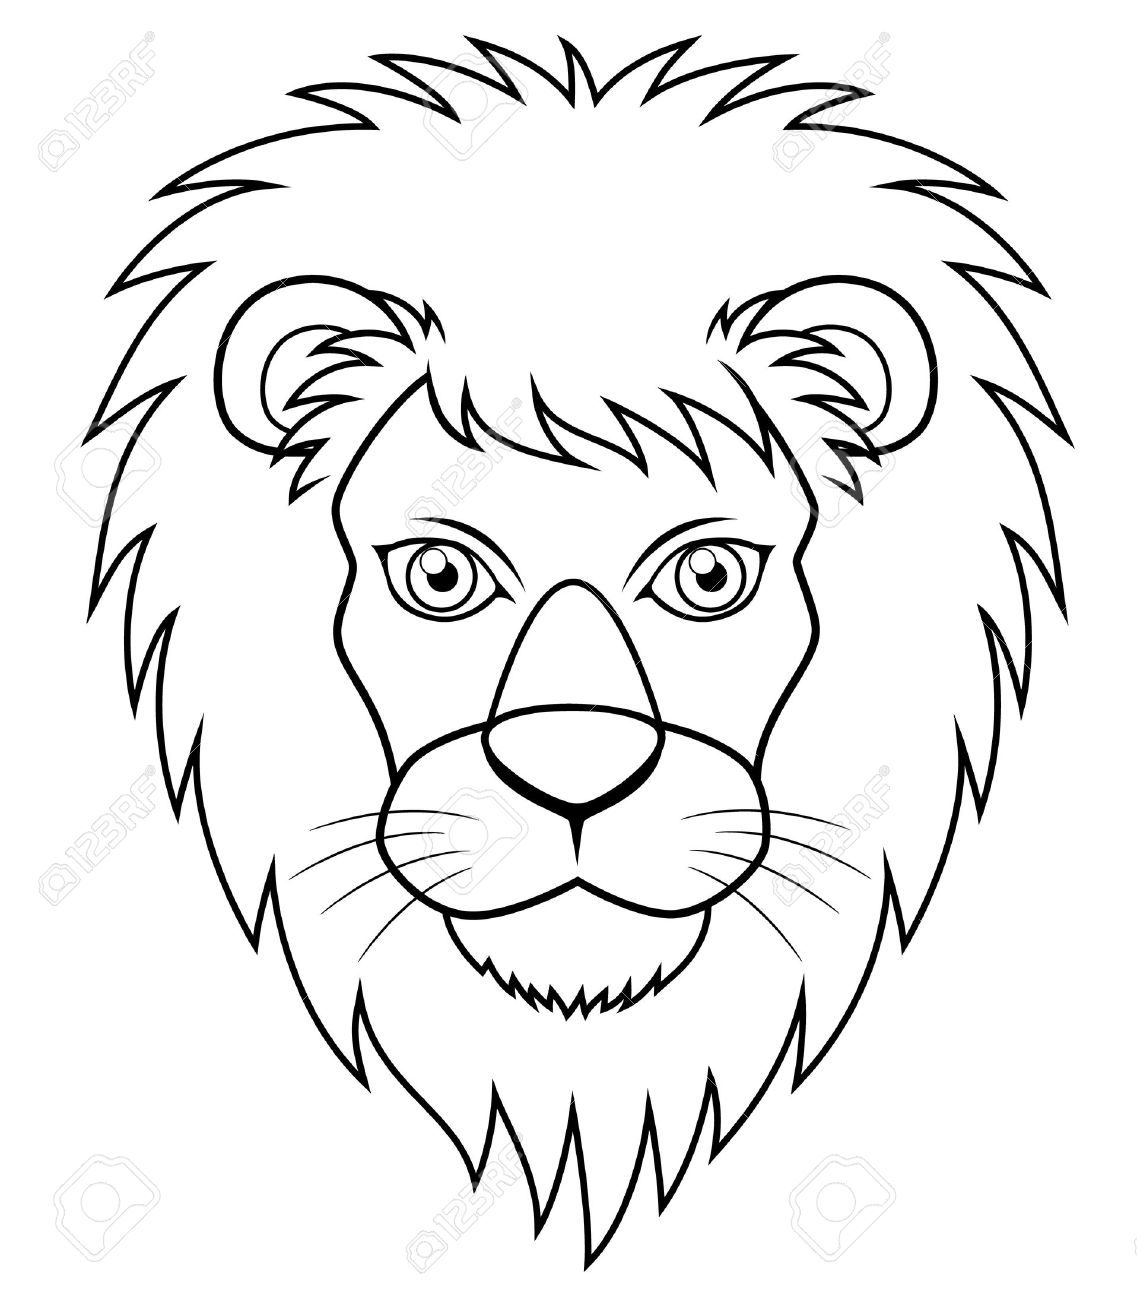 1137x1300 Illustration Of Lion Face Outline Royalty Free Cliparts, Vectors